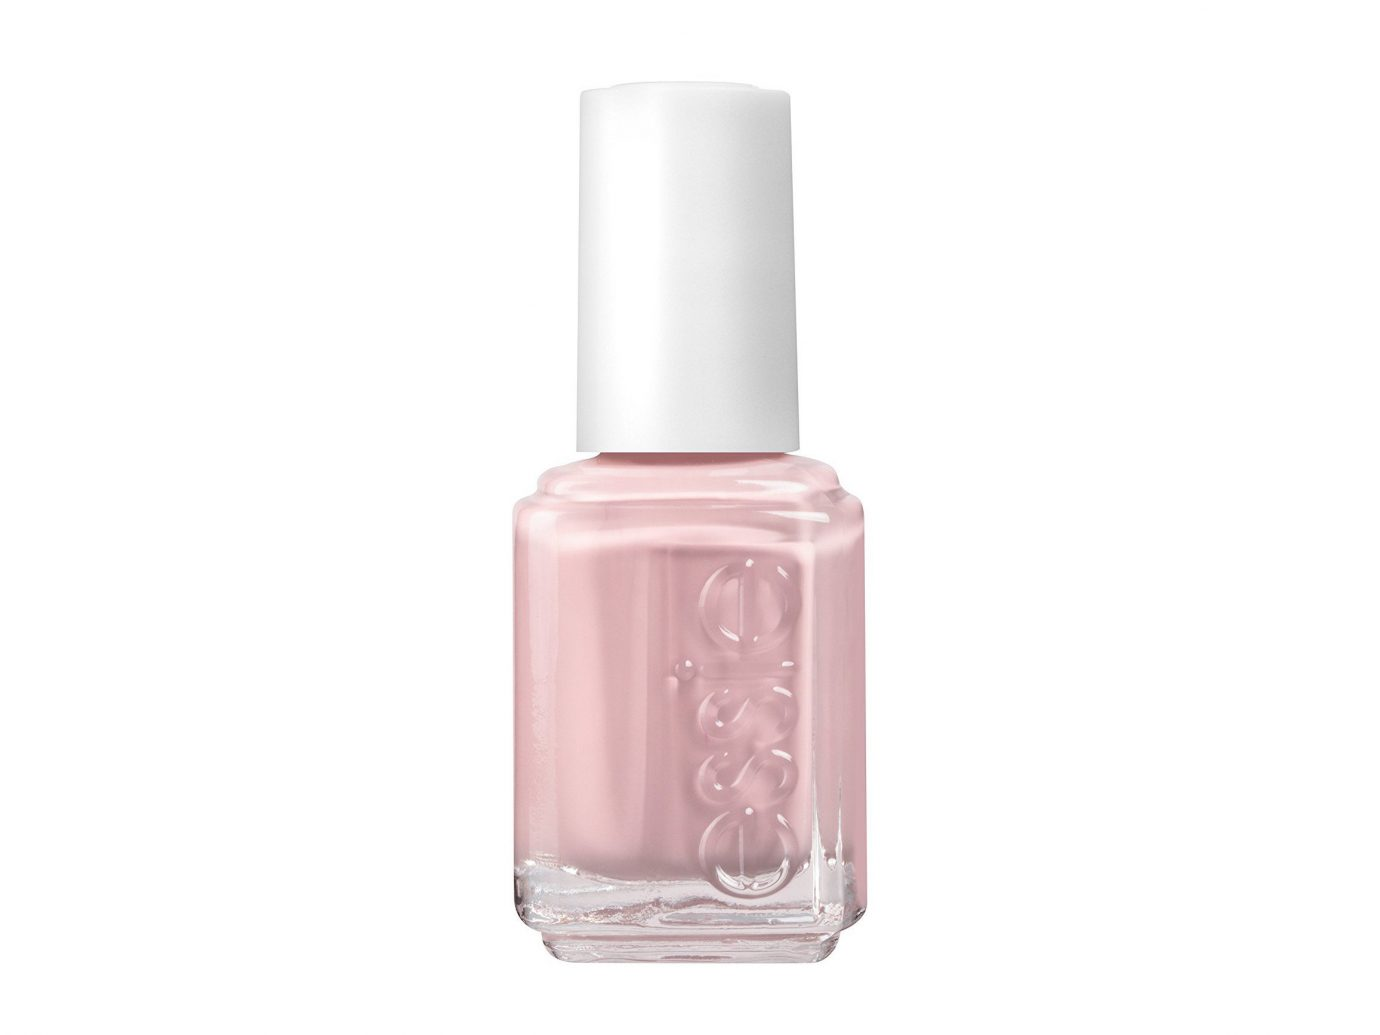 Style + Design Travel Shop toiletry nail polish cosmetics nail care product health & beauty product design peach plastic